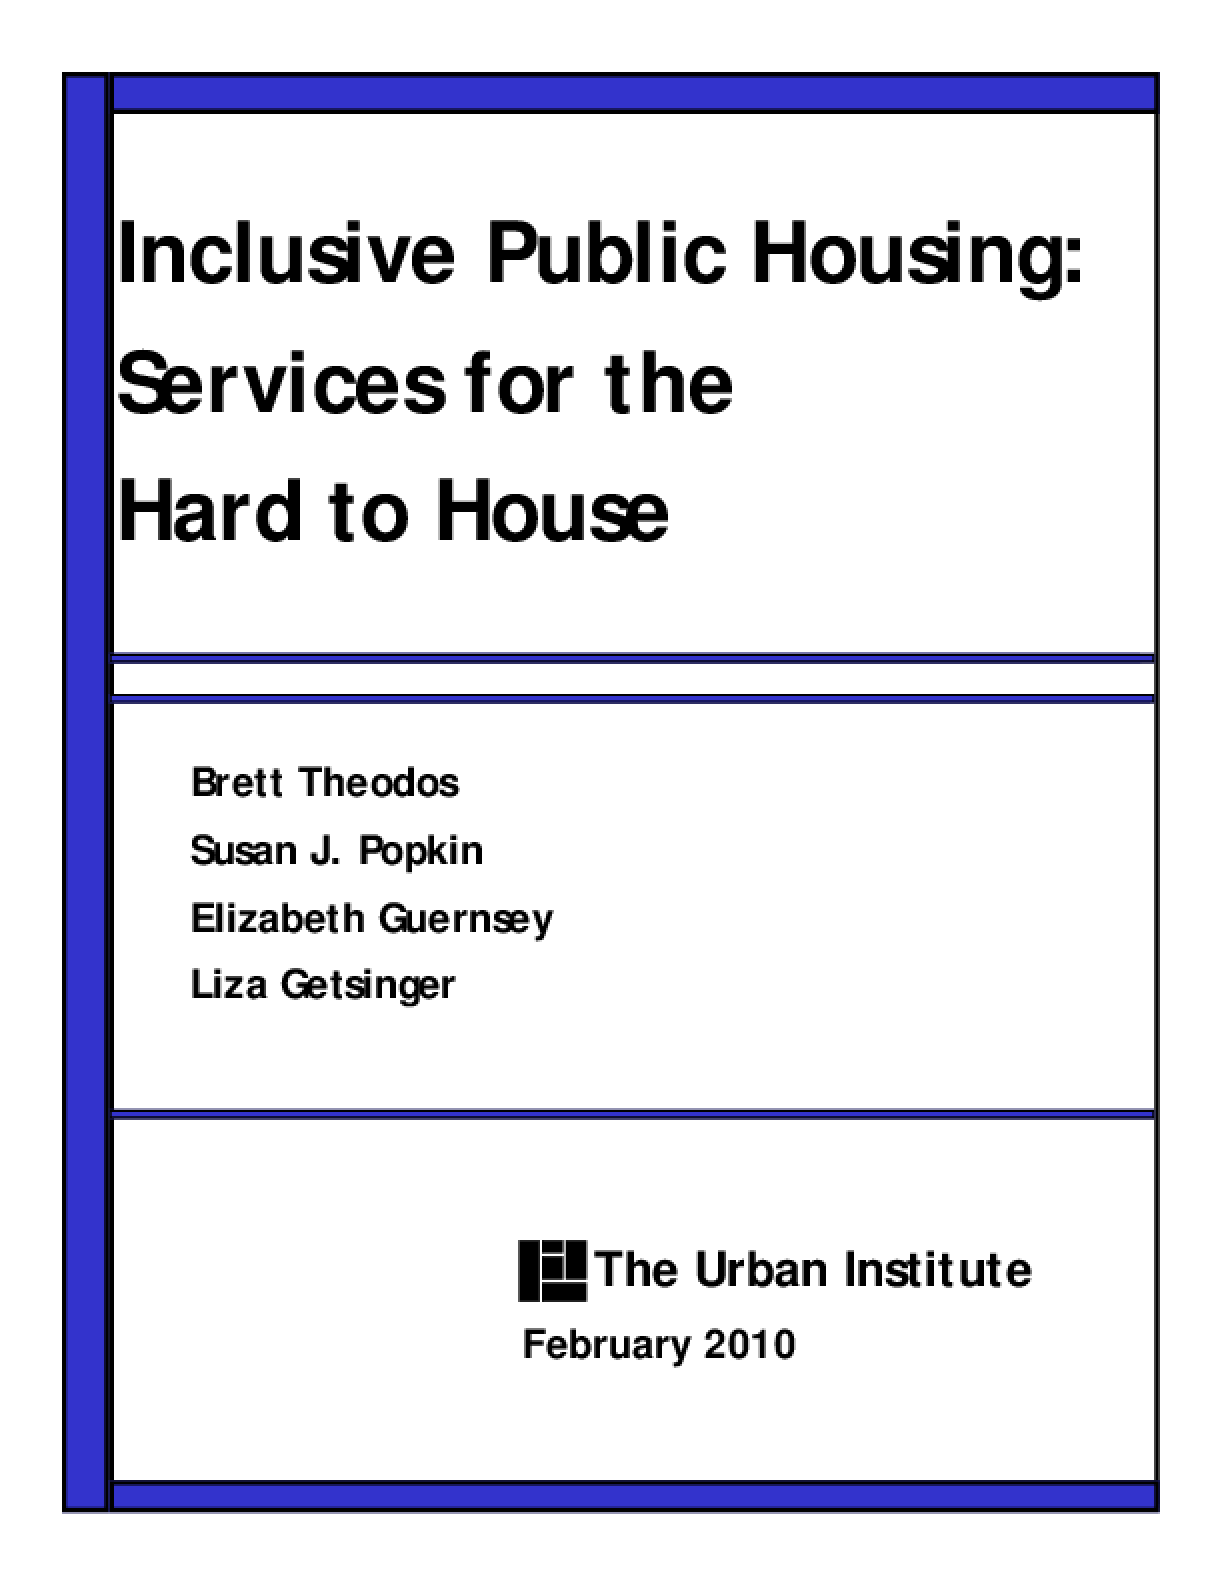 Inclusive Public Housing: Services for the Hard to House